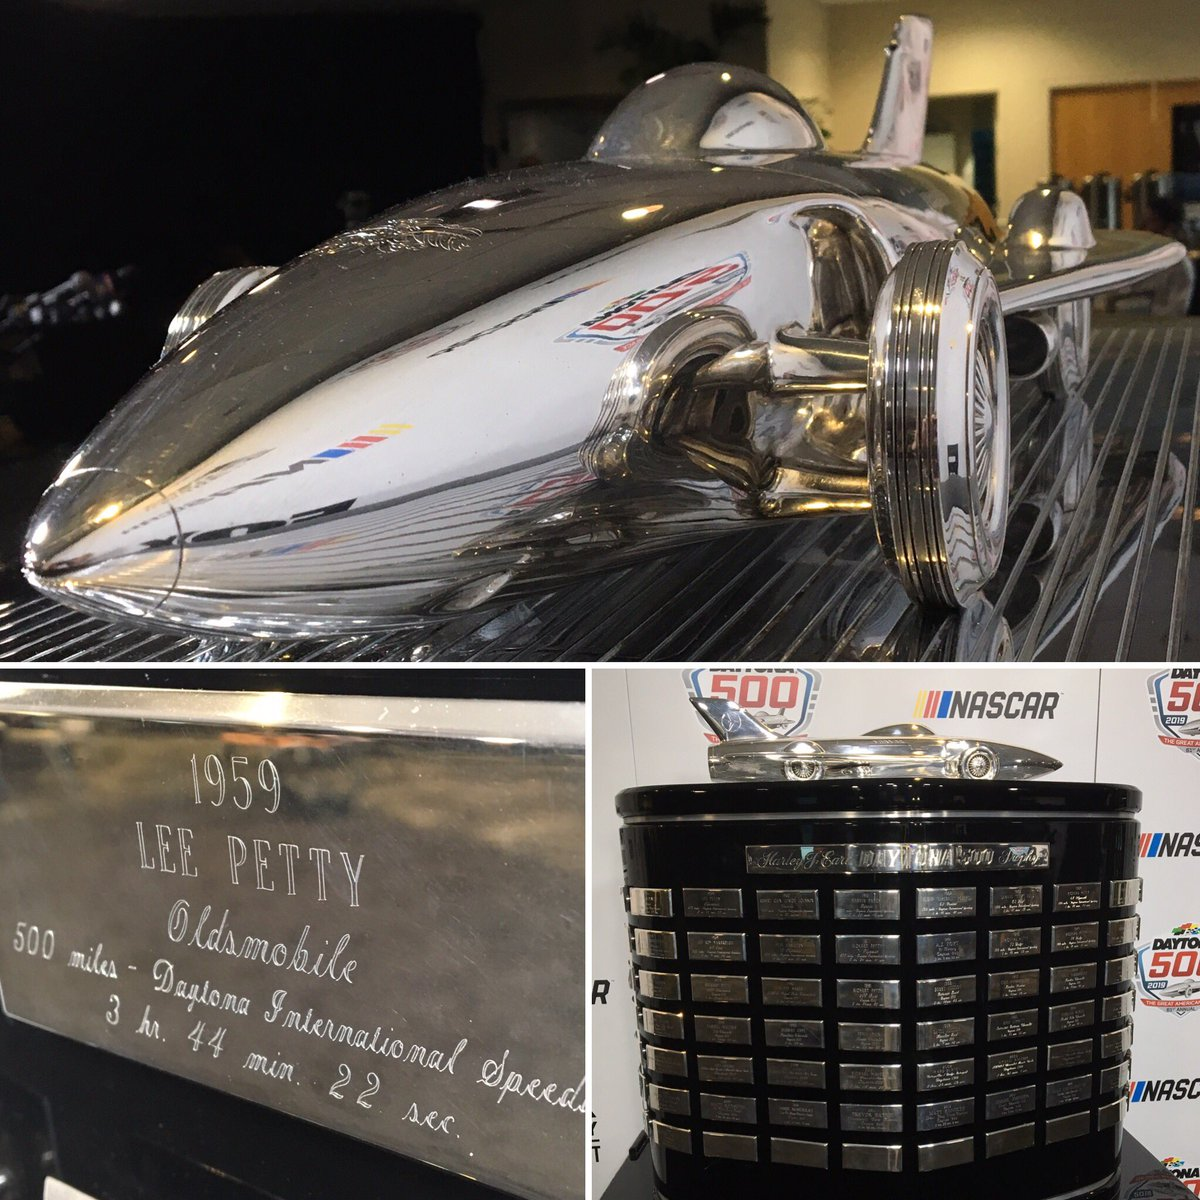 Ryan Mcgee A Twitter The Harley J Earl Trophy Stands 4x5 Feet In The Tri Oval Shape Of Daytona International Speedway Earl A Gm Designer Nascar Commissioner Designed The Corvette And The